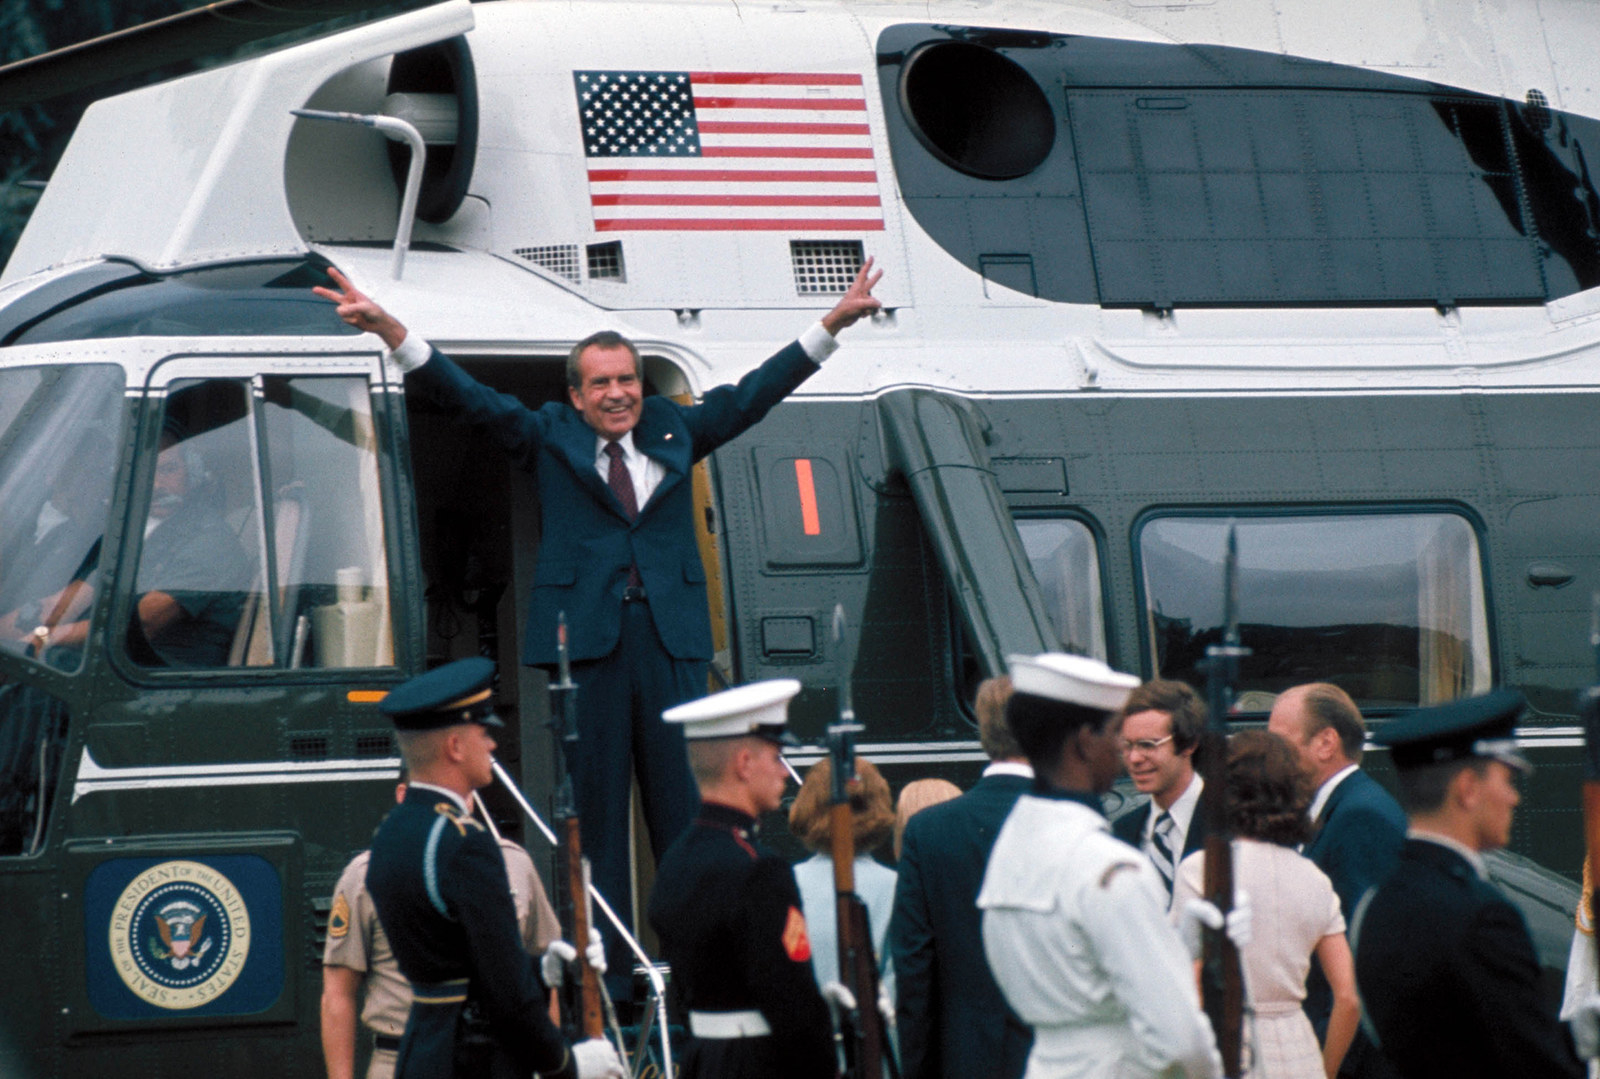 Nixon raises his hands with victory signs in the doorway of a helicopter after leaving the White House following his resignation on Aug. 9, 1974.